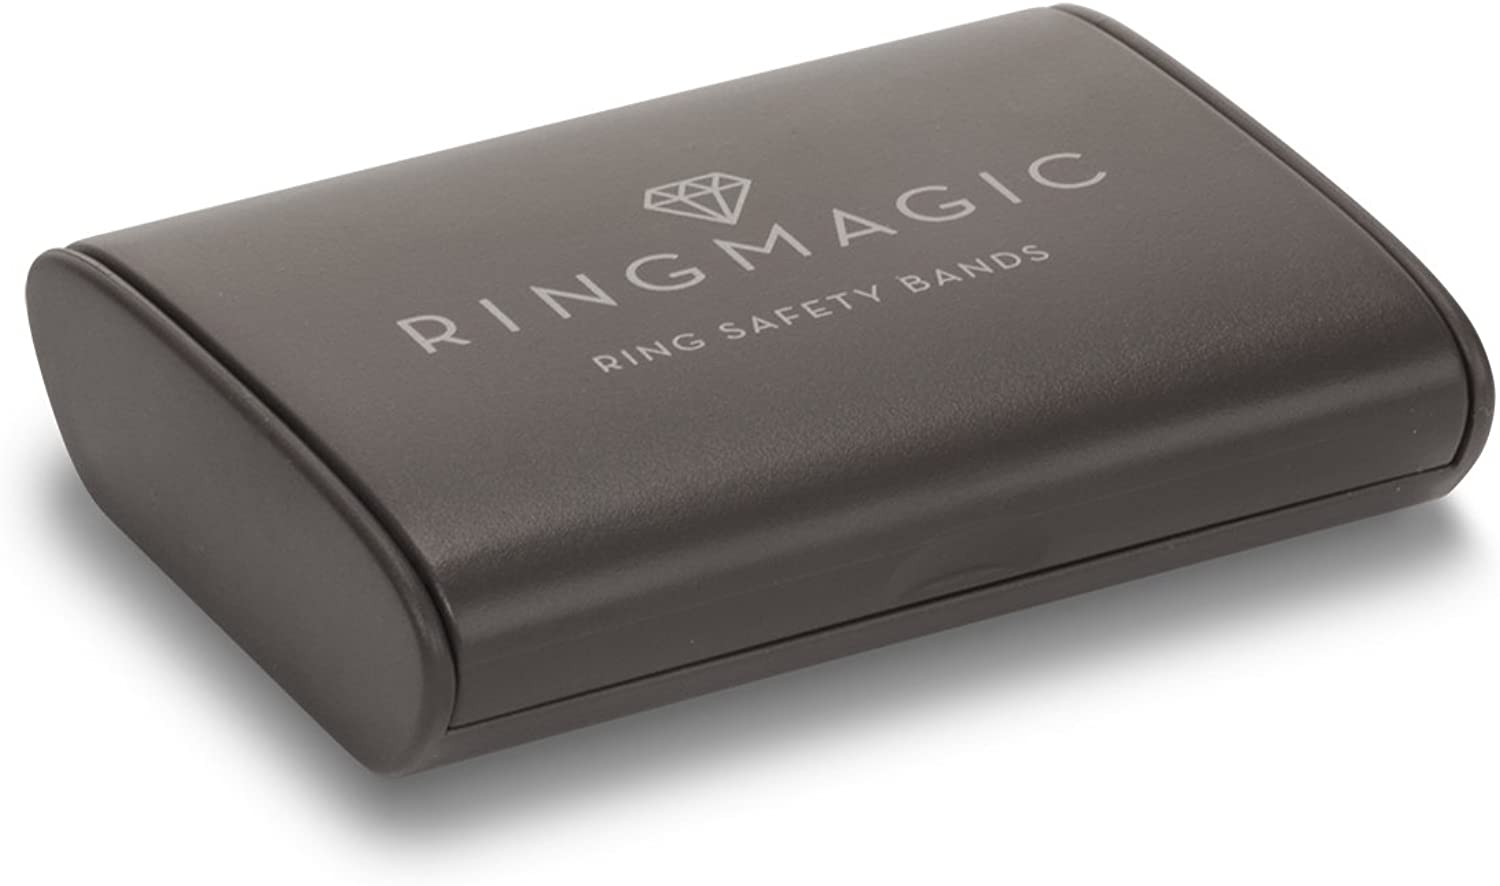 Ring Magic Ring Resizer, Ring Safety Bands, 12 Pack Large (for Ring Size 7-12) with Compact Case